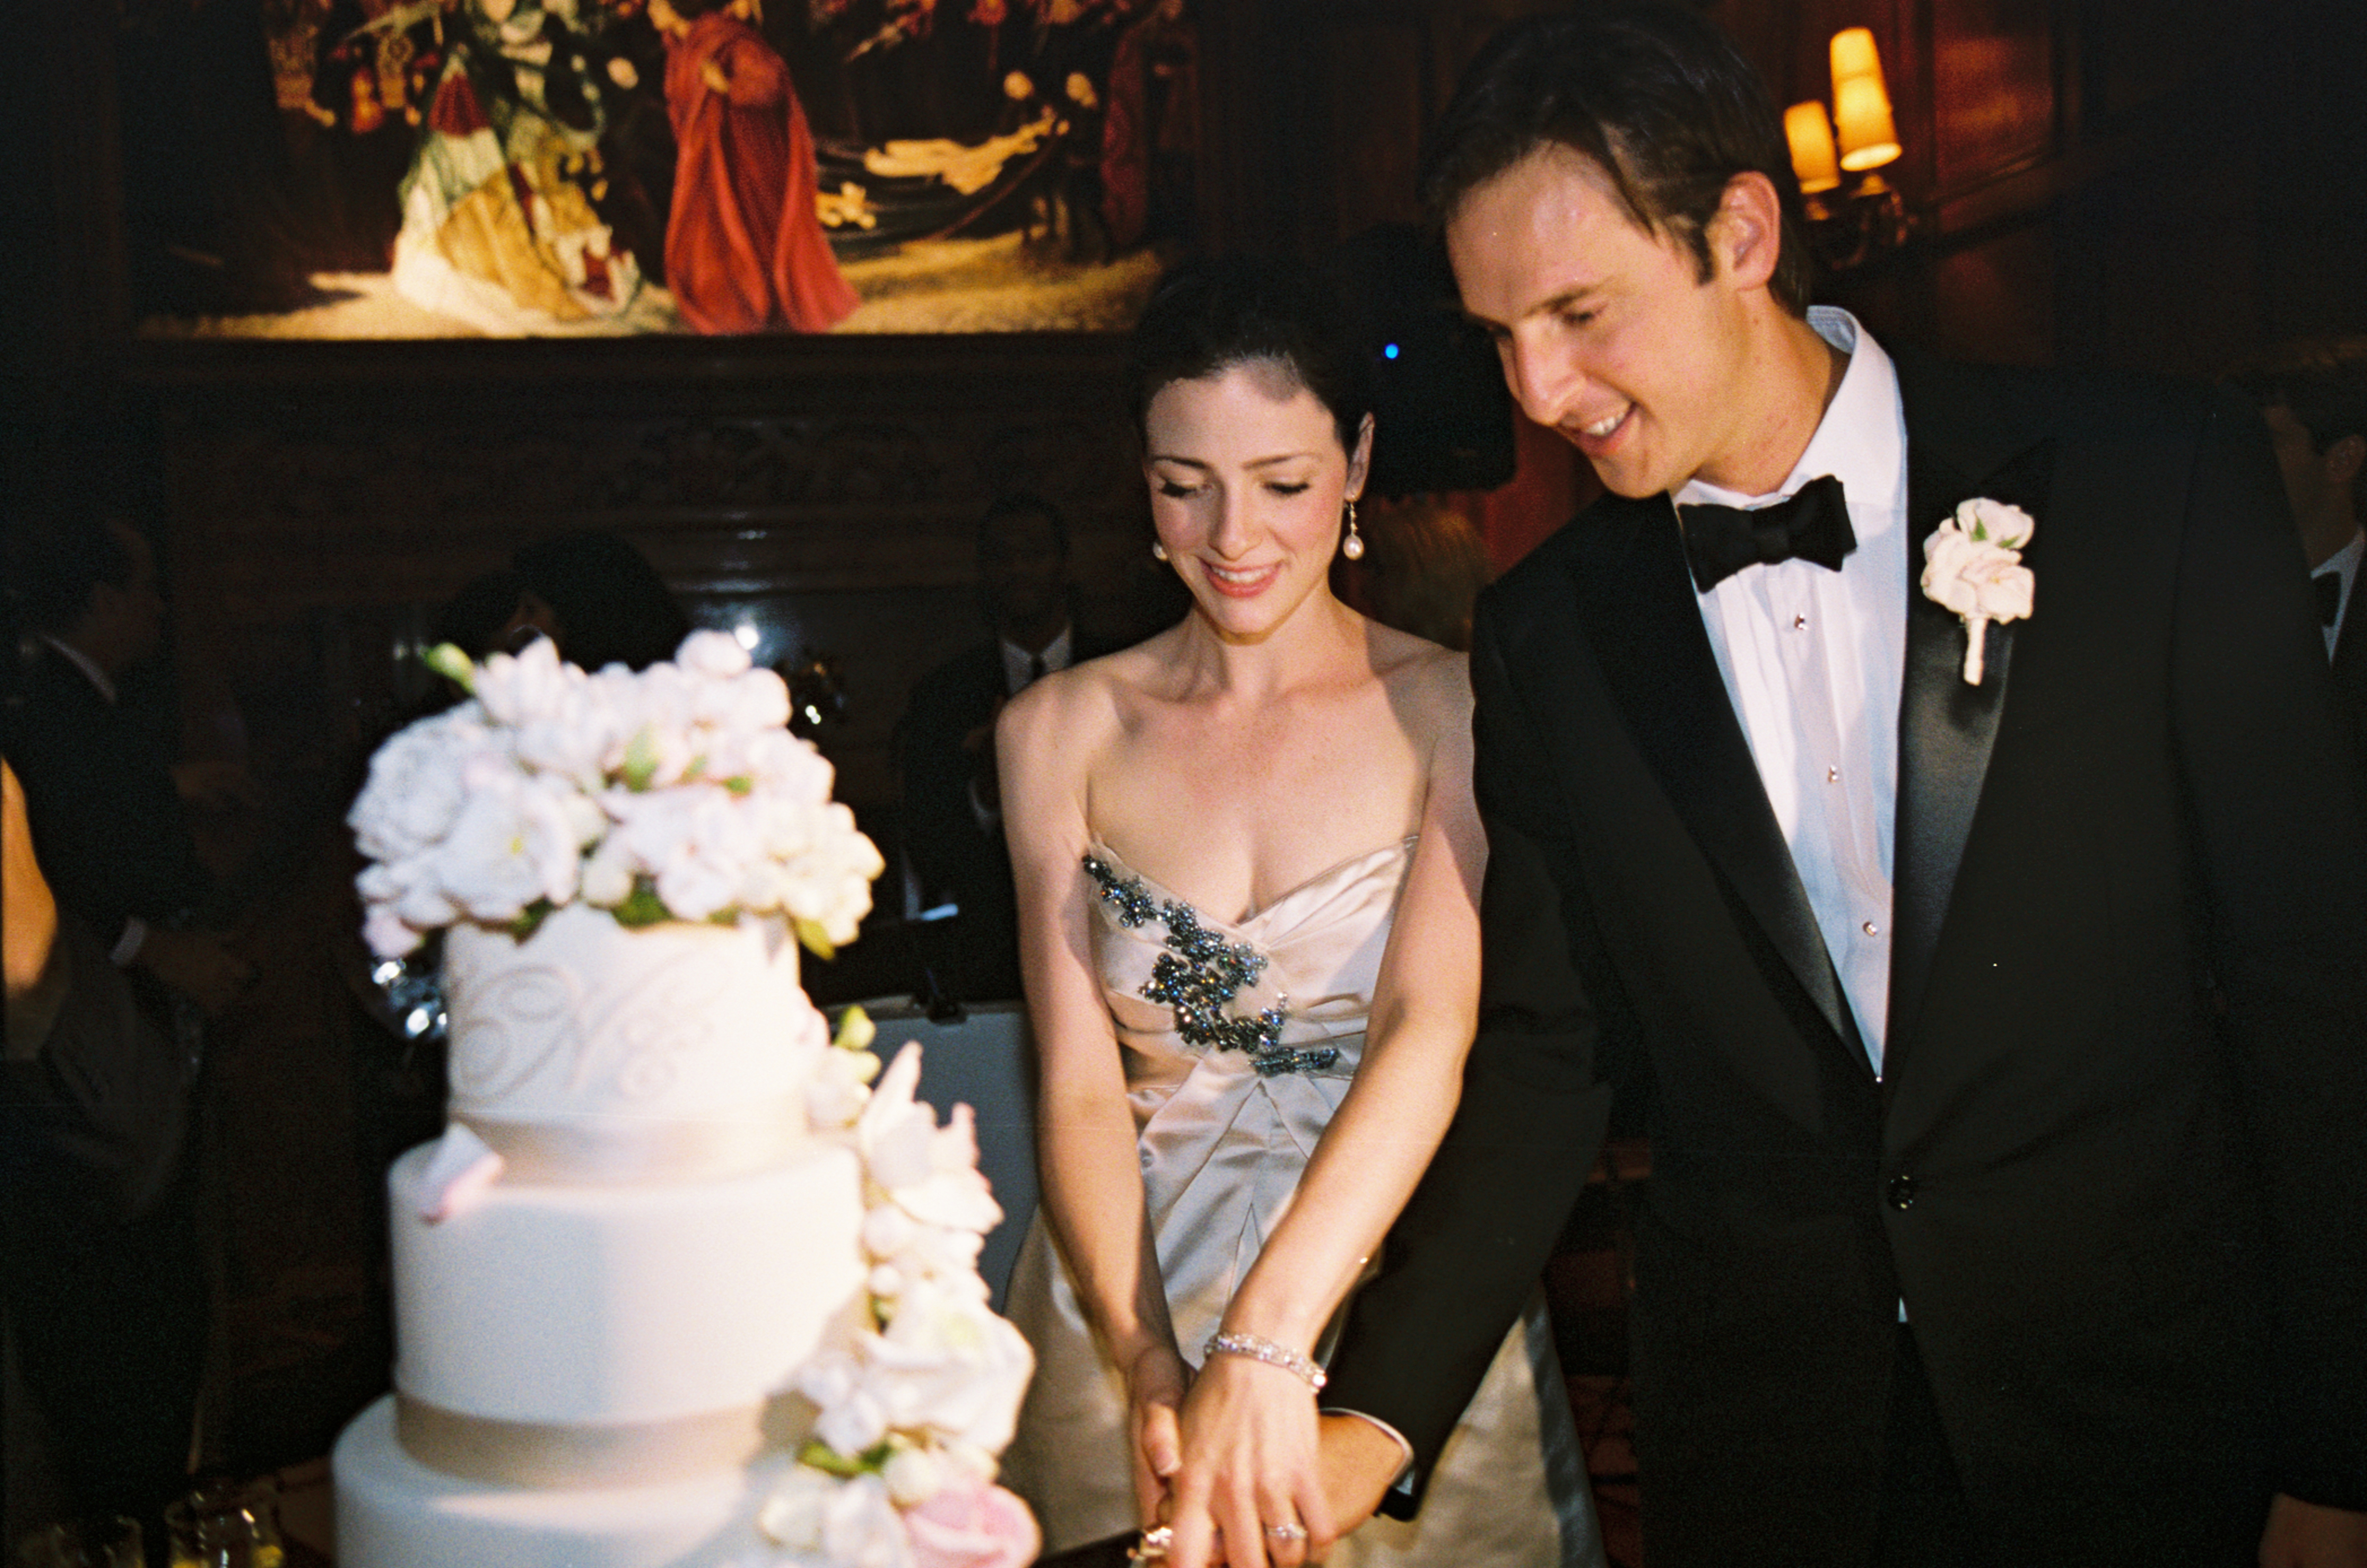 10 Traditions To Not skip For Your Wedding   Amanda Douglas Events     cutting the wedding cake   amanda douglas events